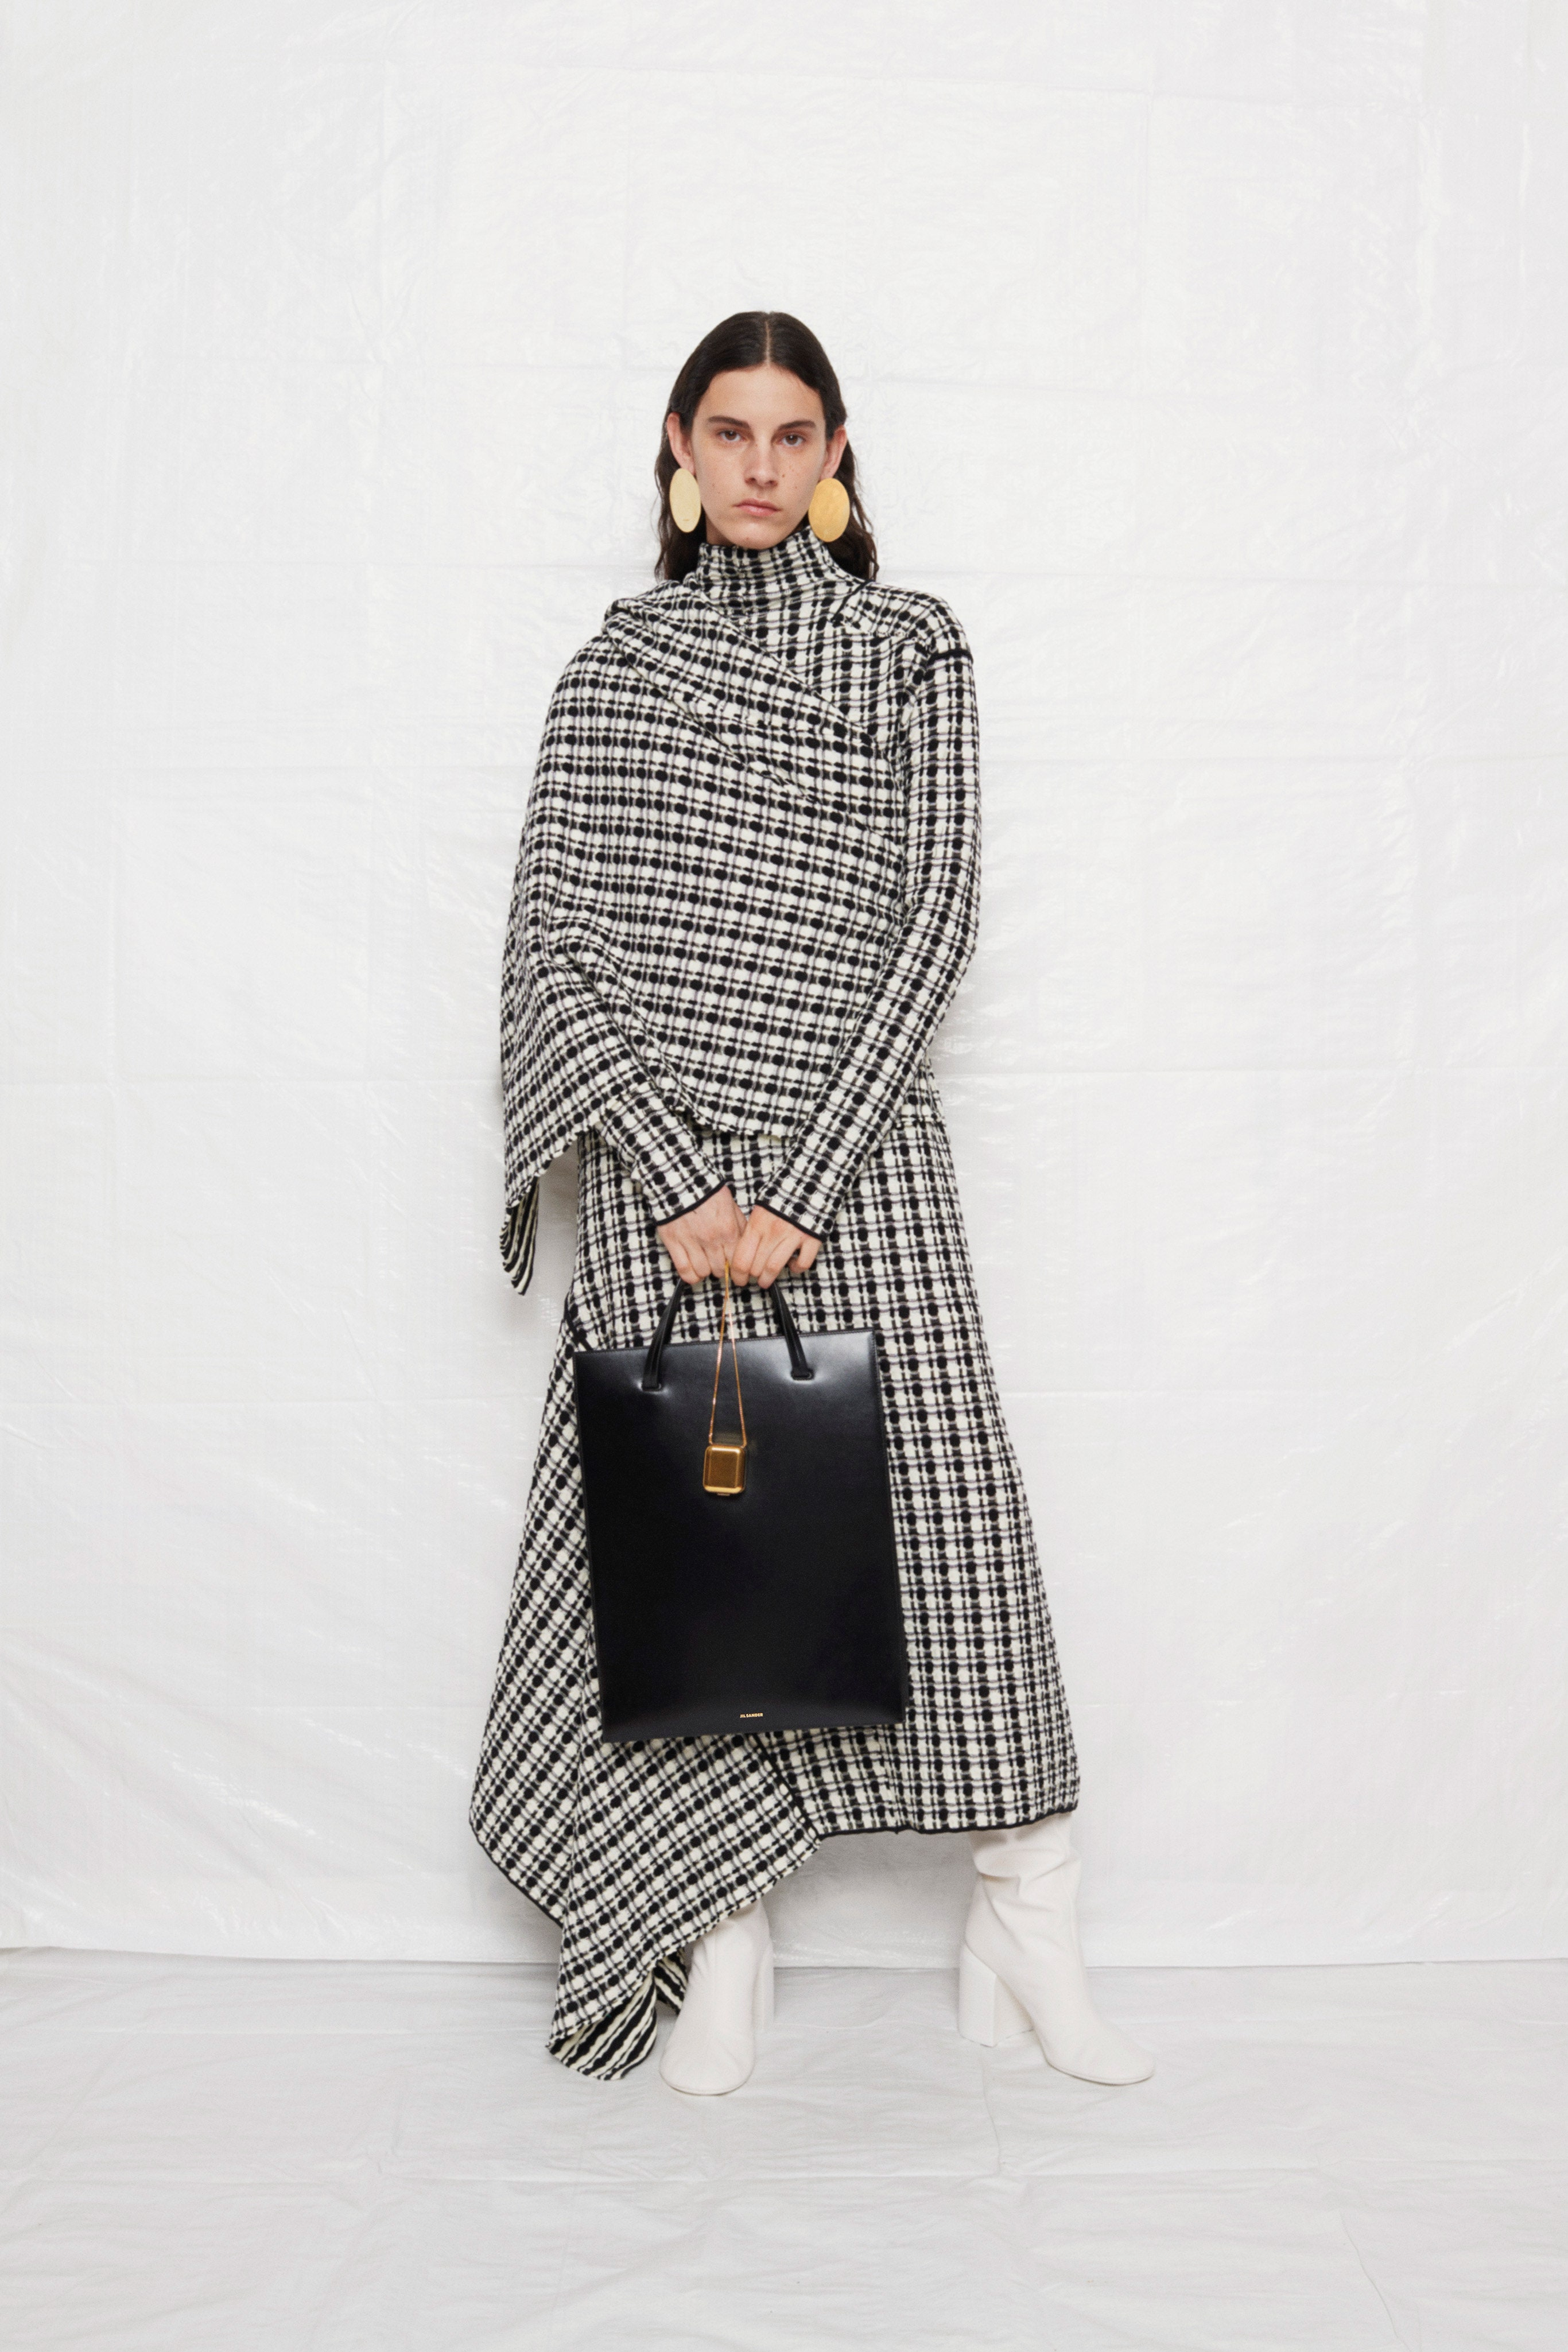 For walks in the fresh air: A seasonal collection of Jil Sander arrived at Asthik (photo 24)